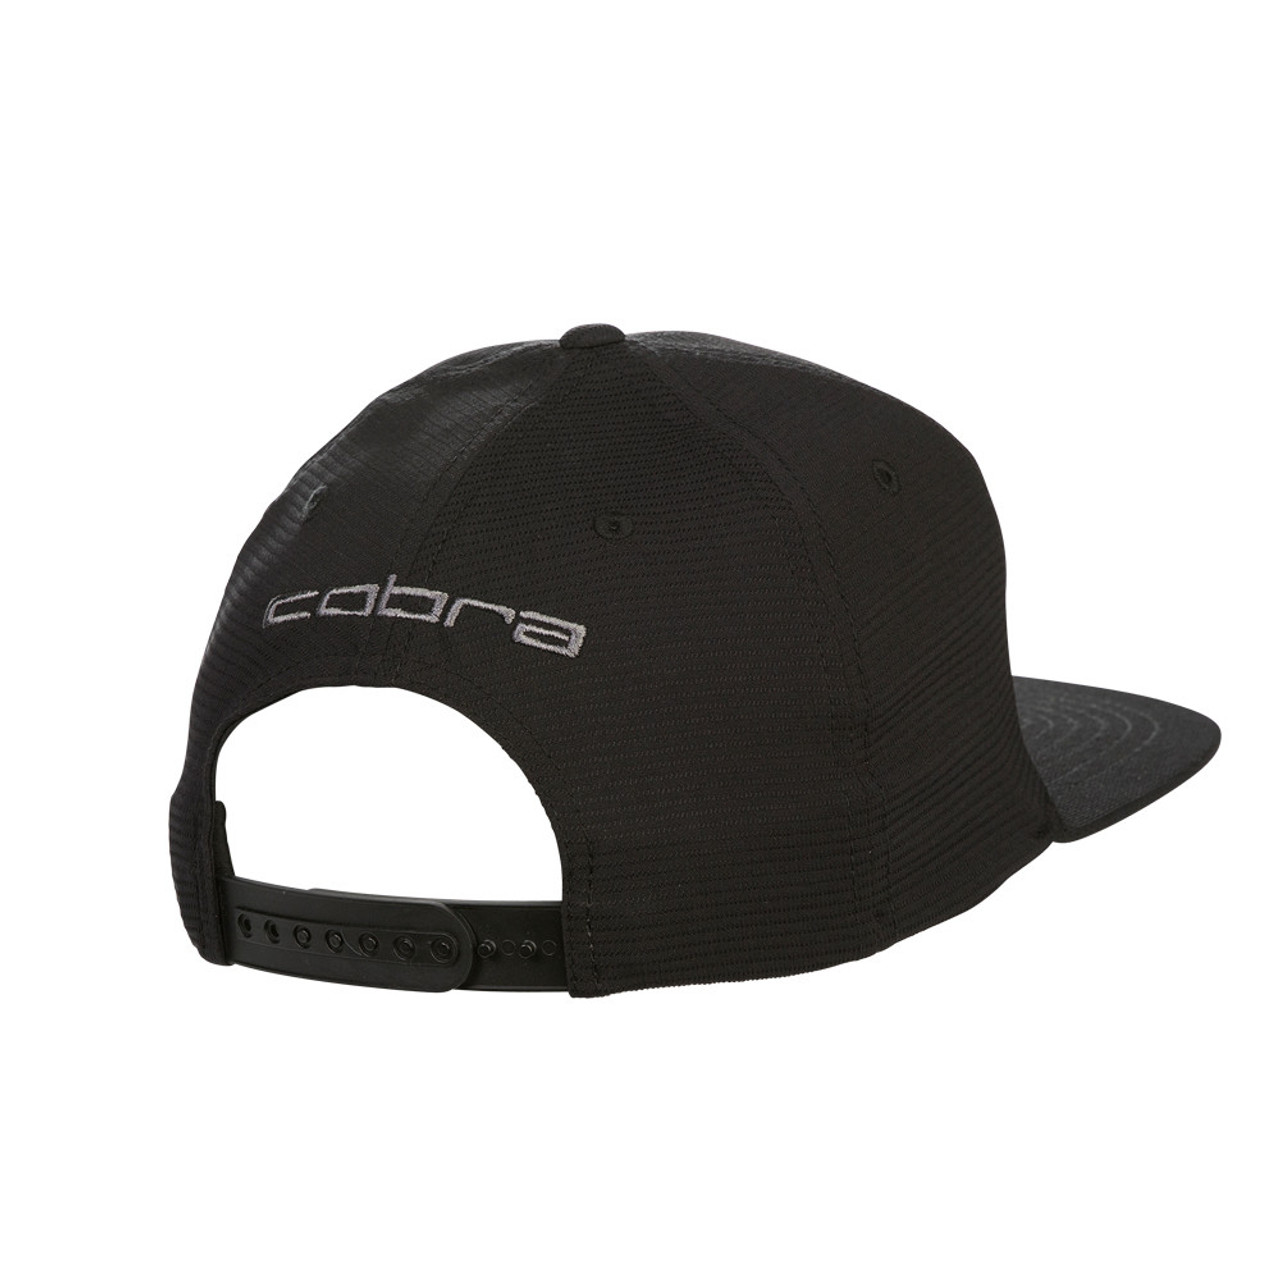 Cobra Tour Snake Snapback Caps - Black